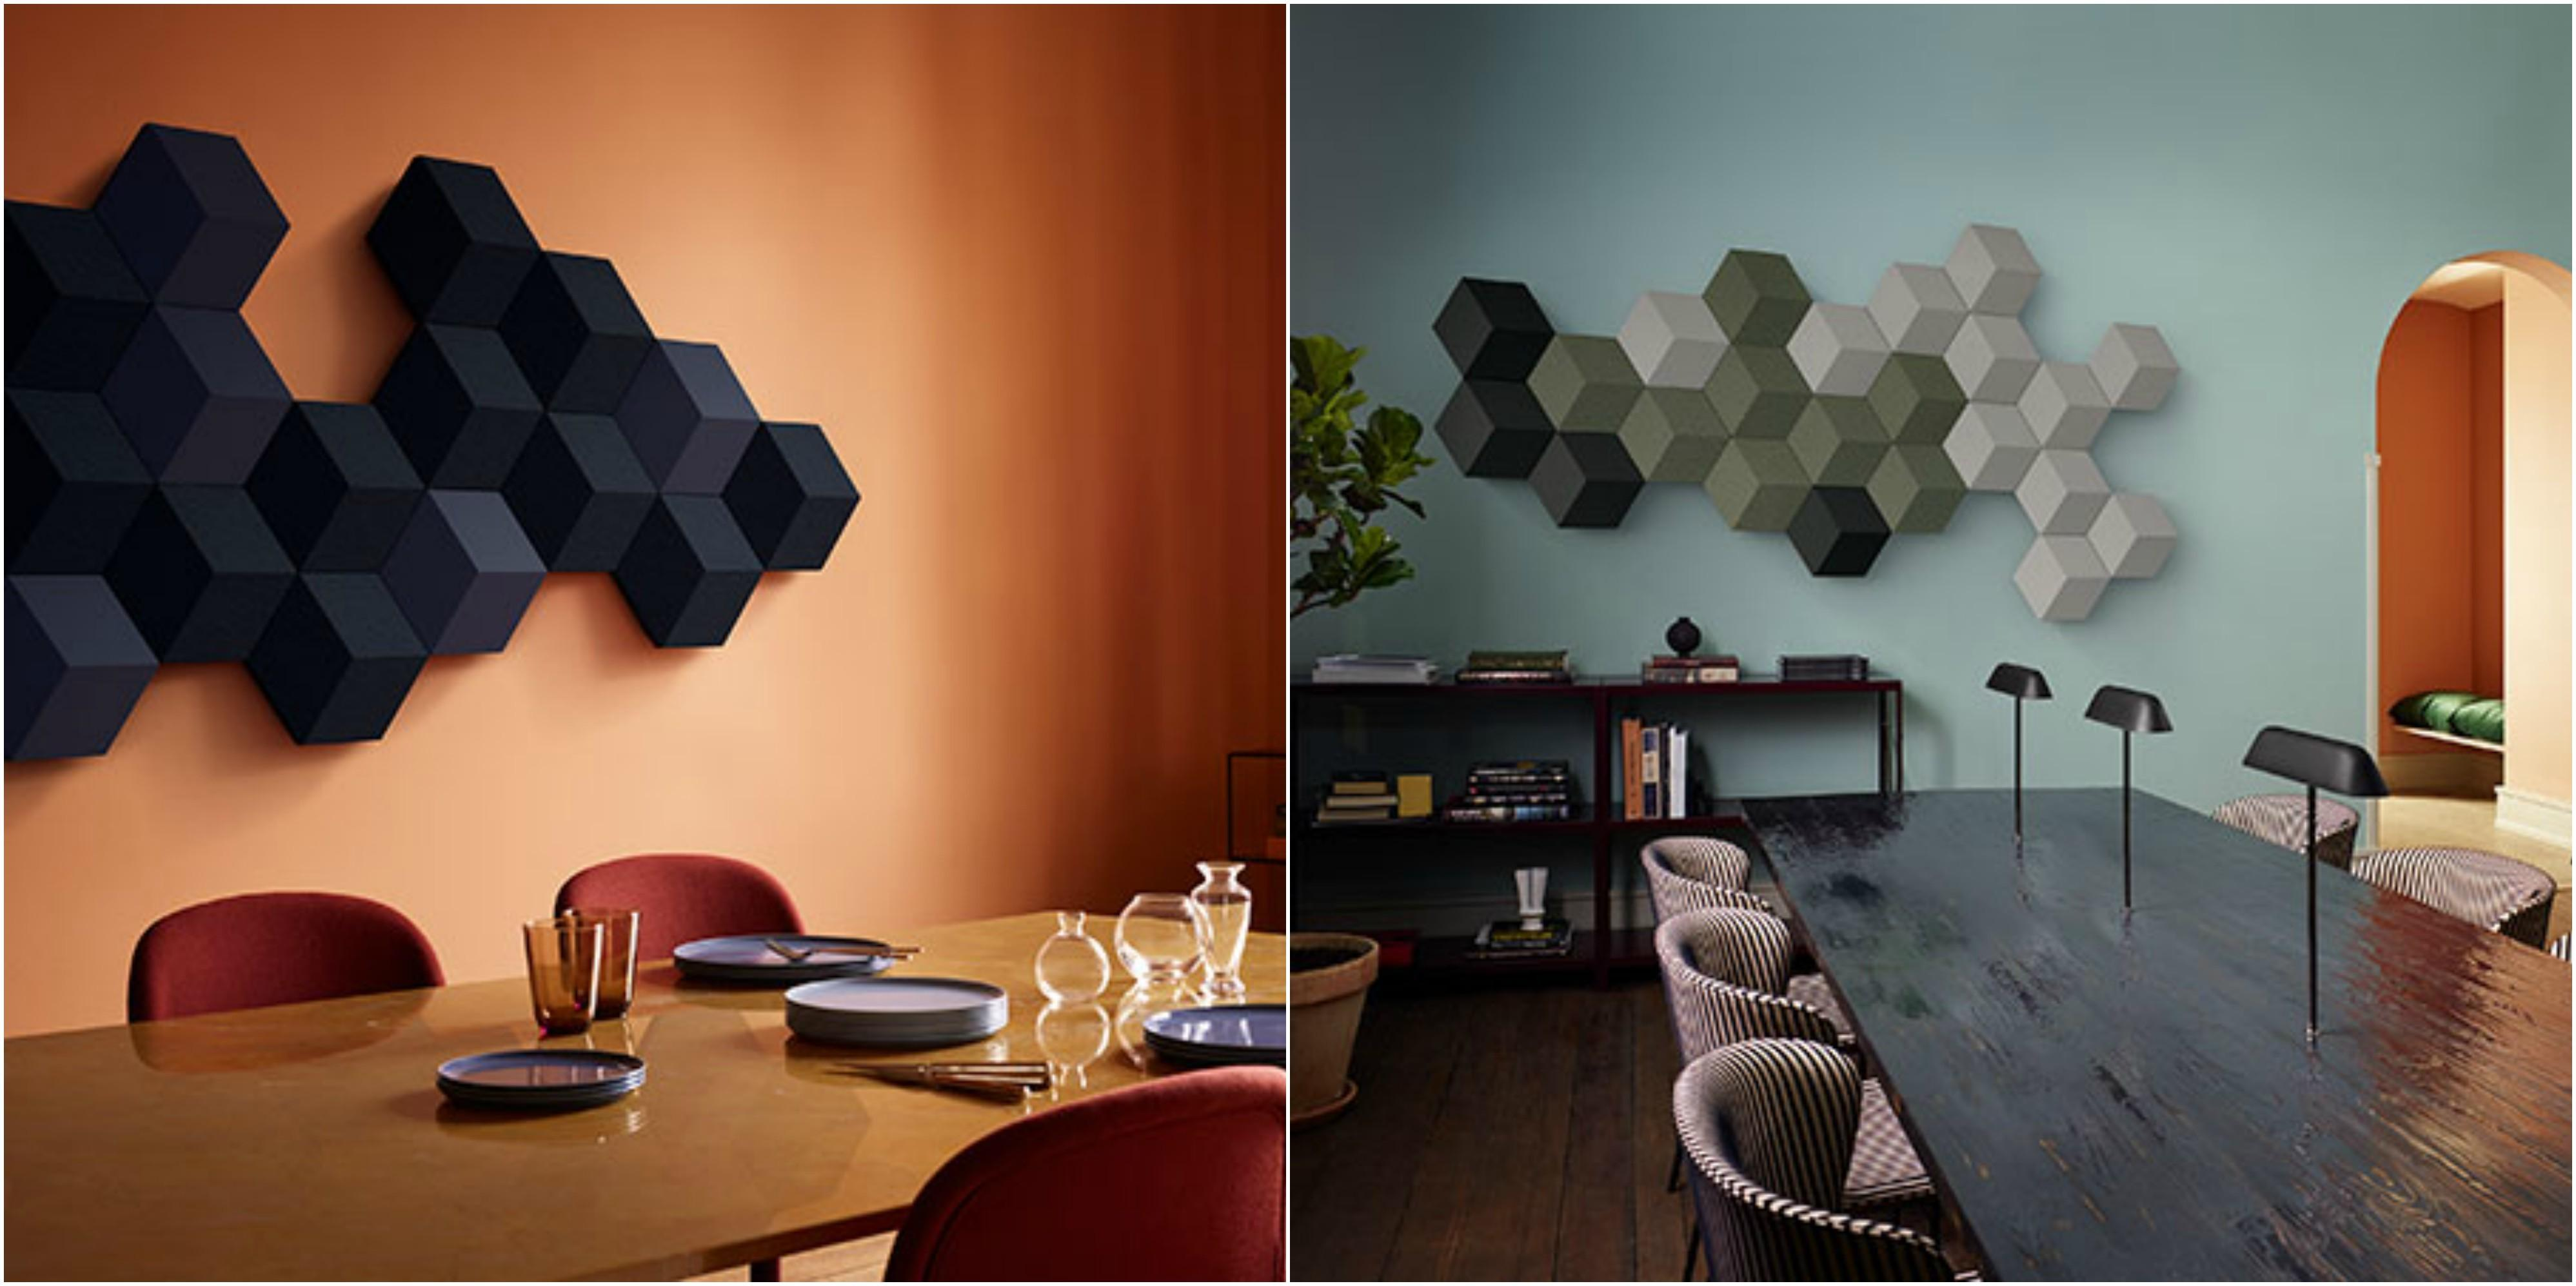 Milan Fair Trend Watch New Sculptural Geometric